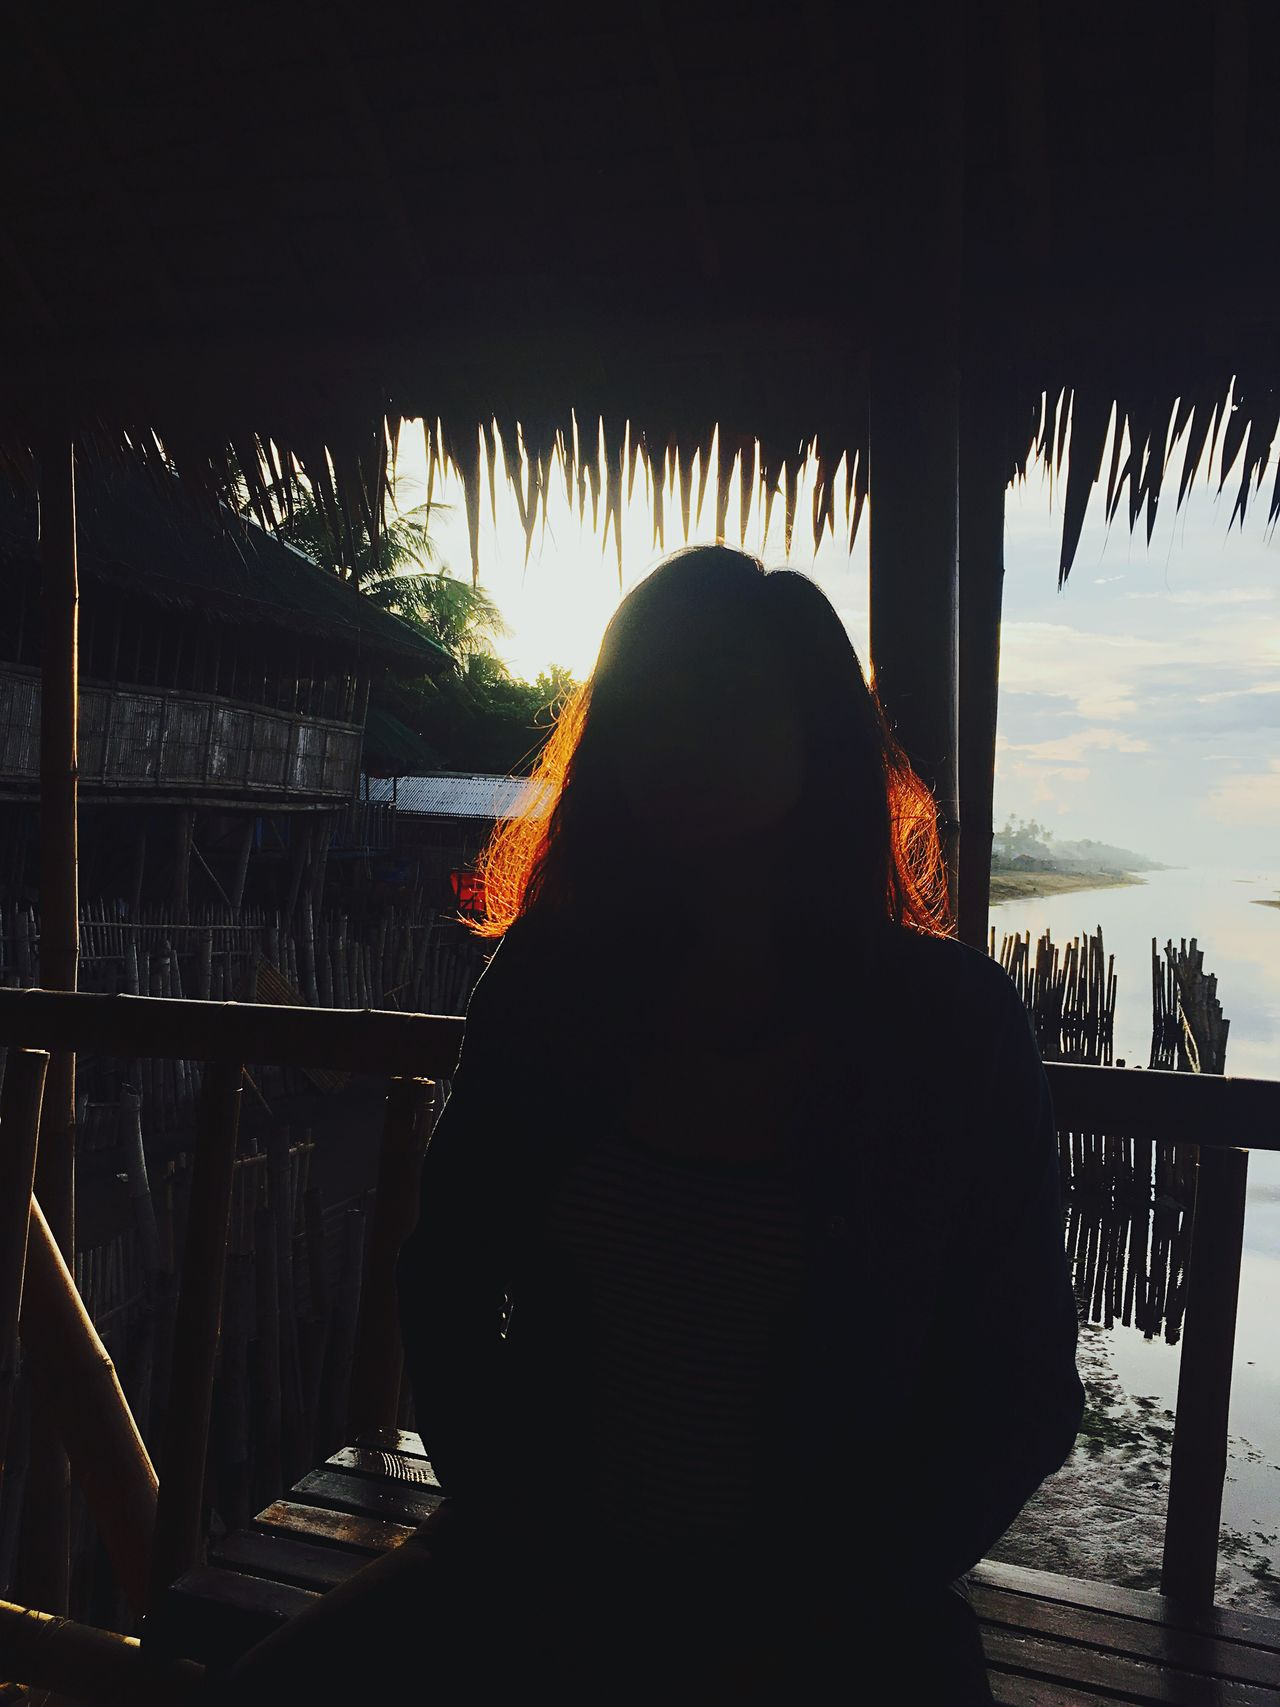 Silhouette of a woman. Symbolism Red Hair Stolen Shot Mane Of Fire Person Scenic View Dark People